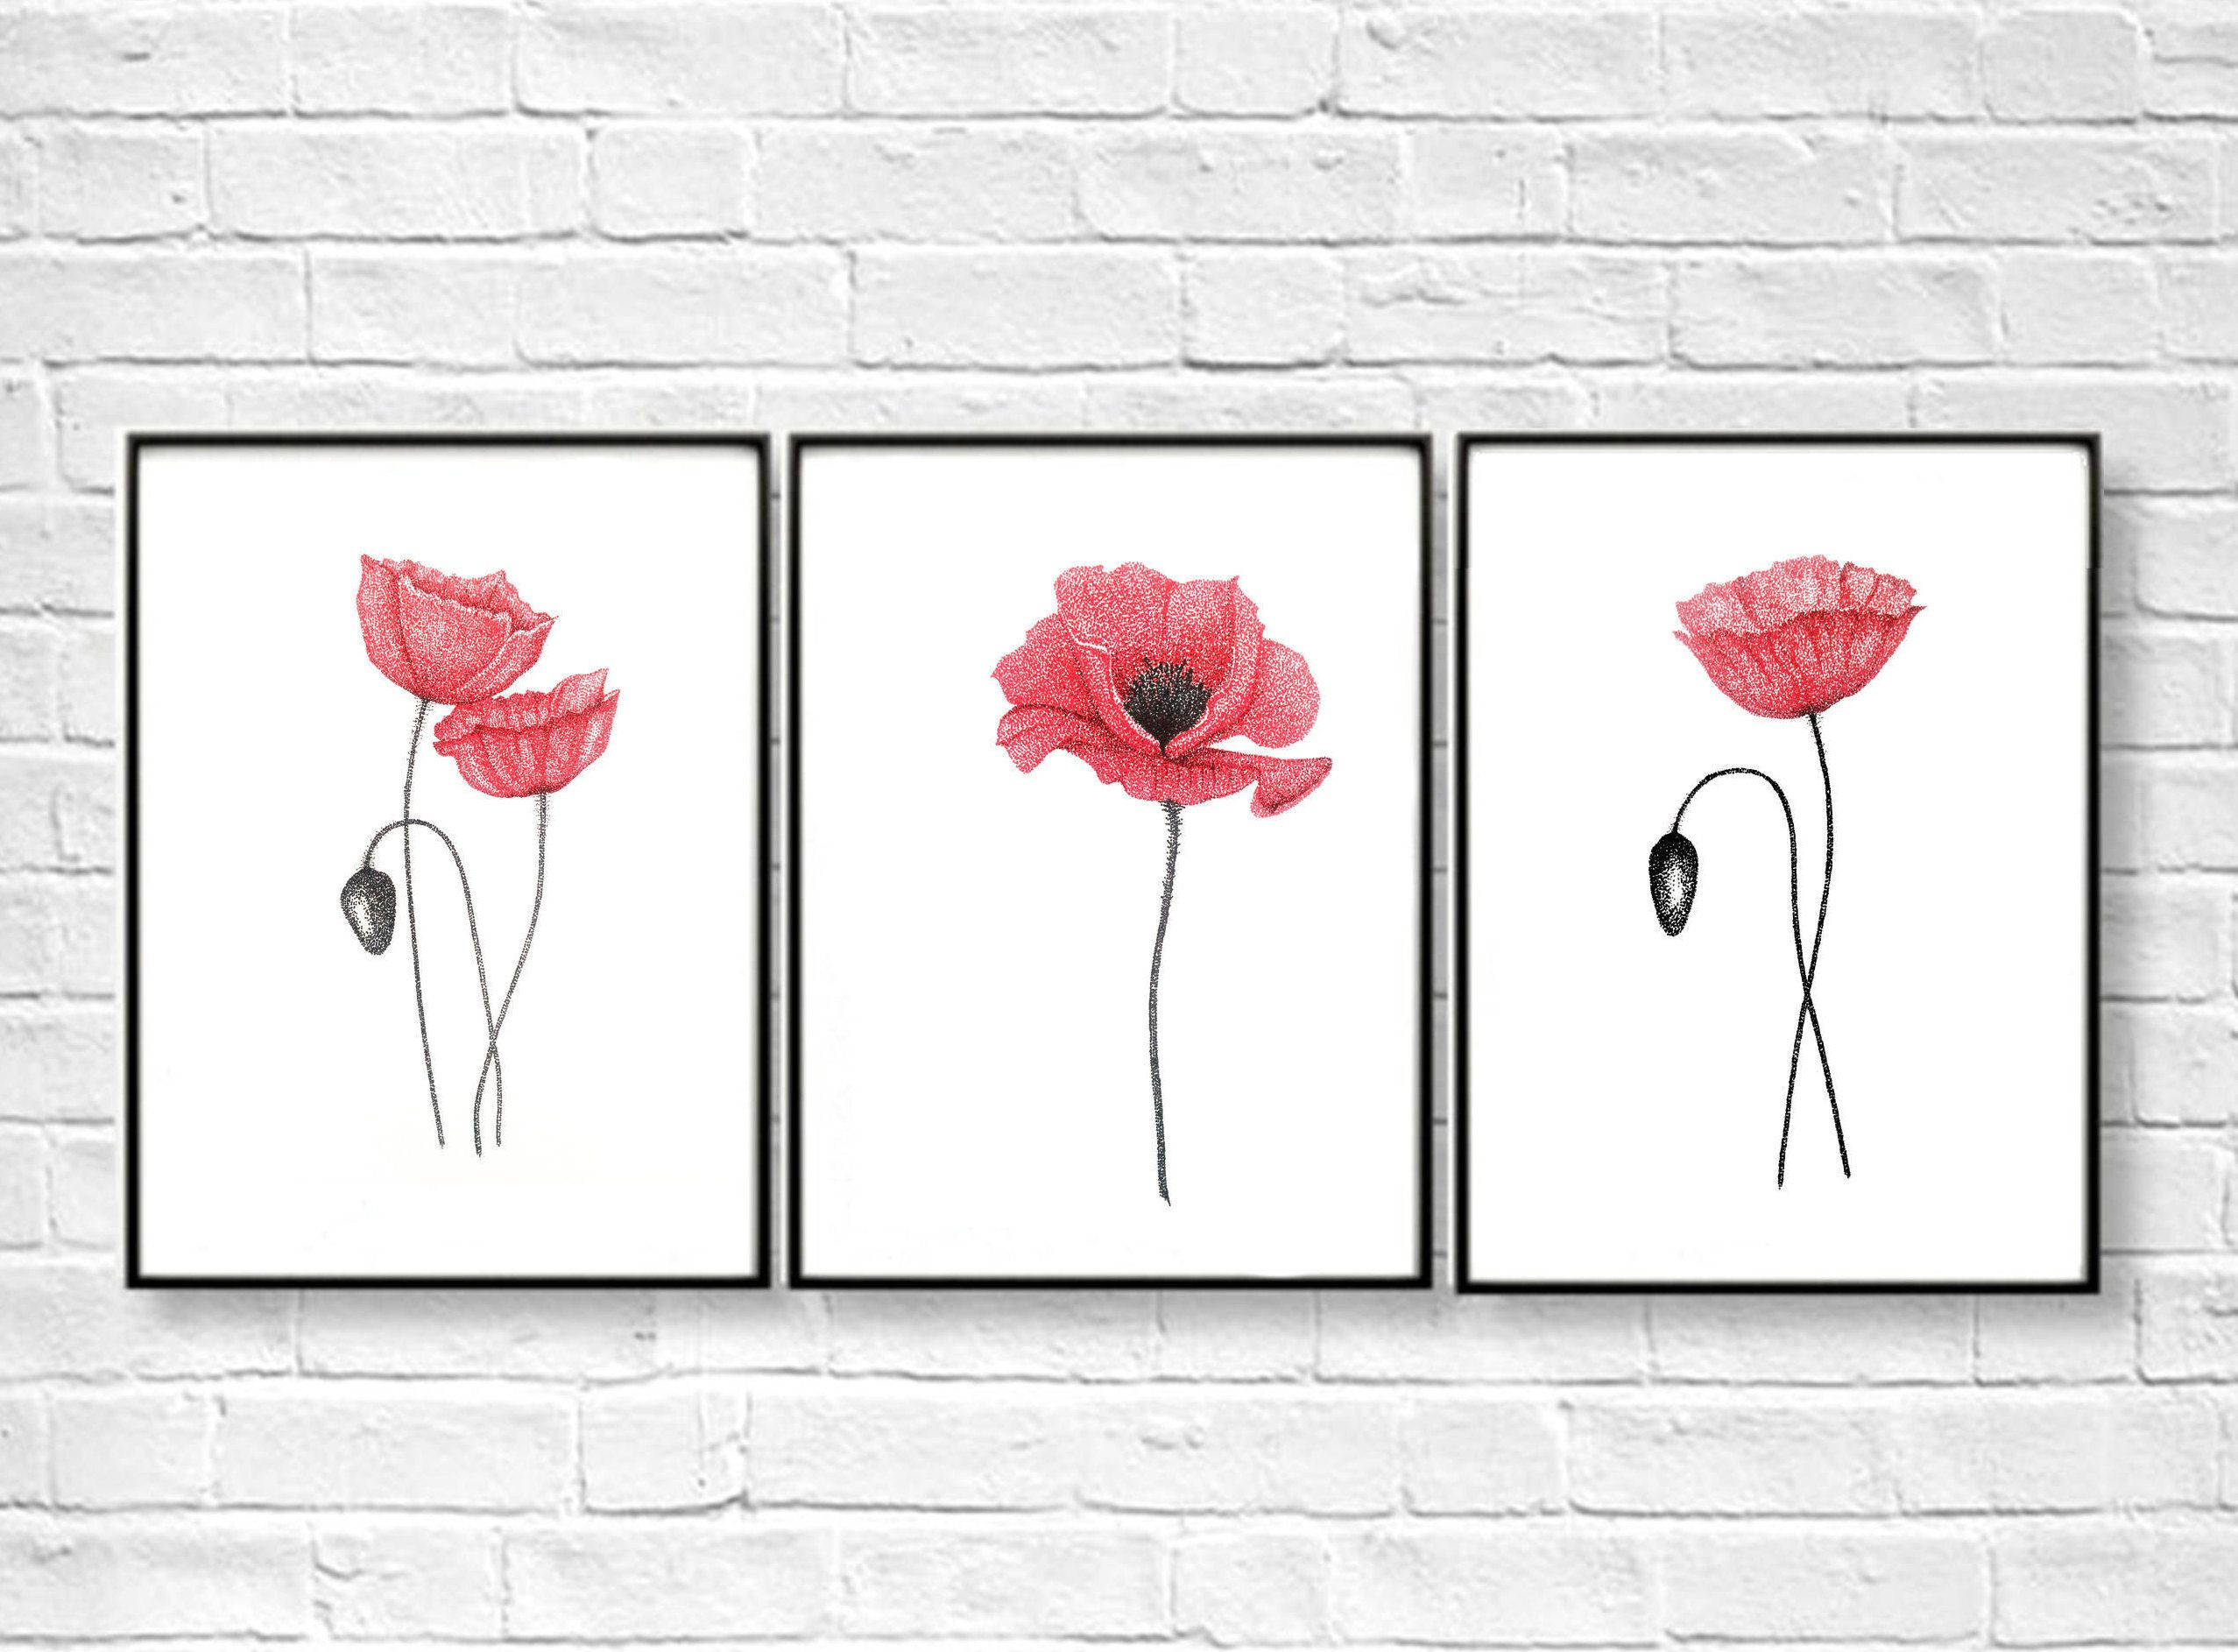 Red Poppies Set Of 3 Prints Poppy Home Decor Abstract Home Decorators Catalog Best Ideas of Home Decor and Design [homedecoratorscatalog.us]